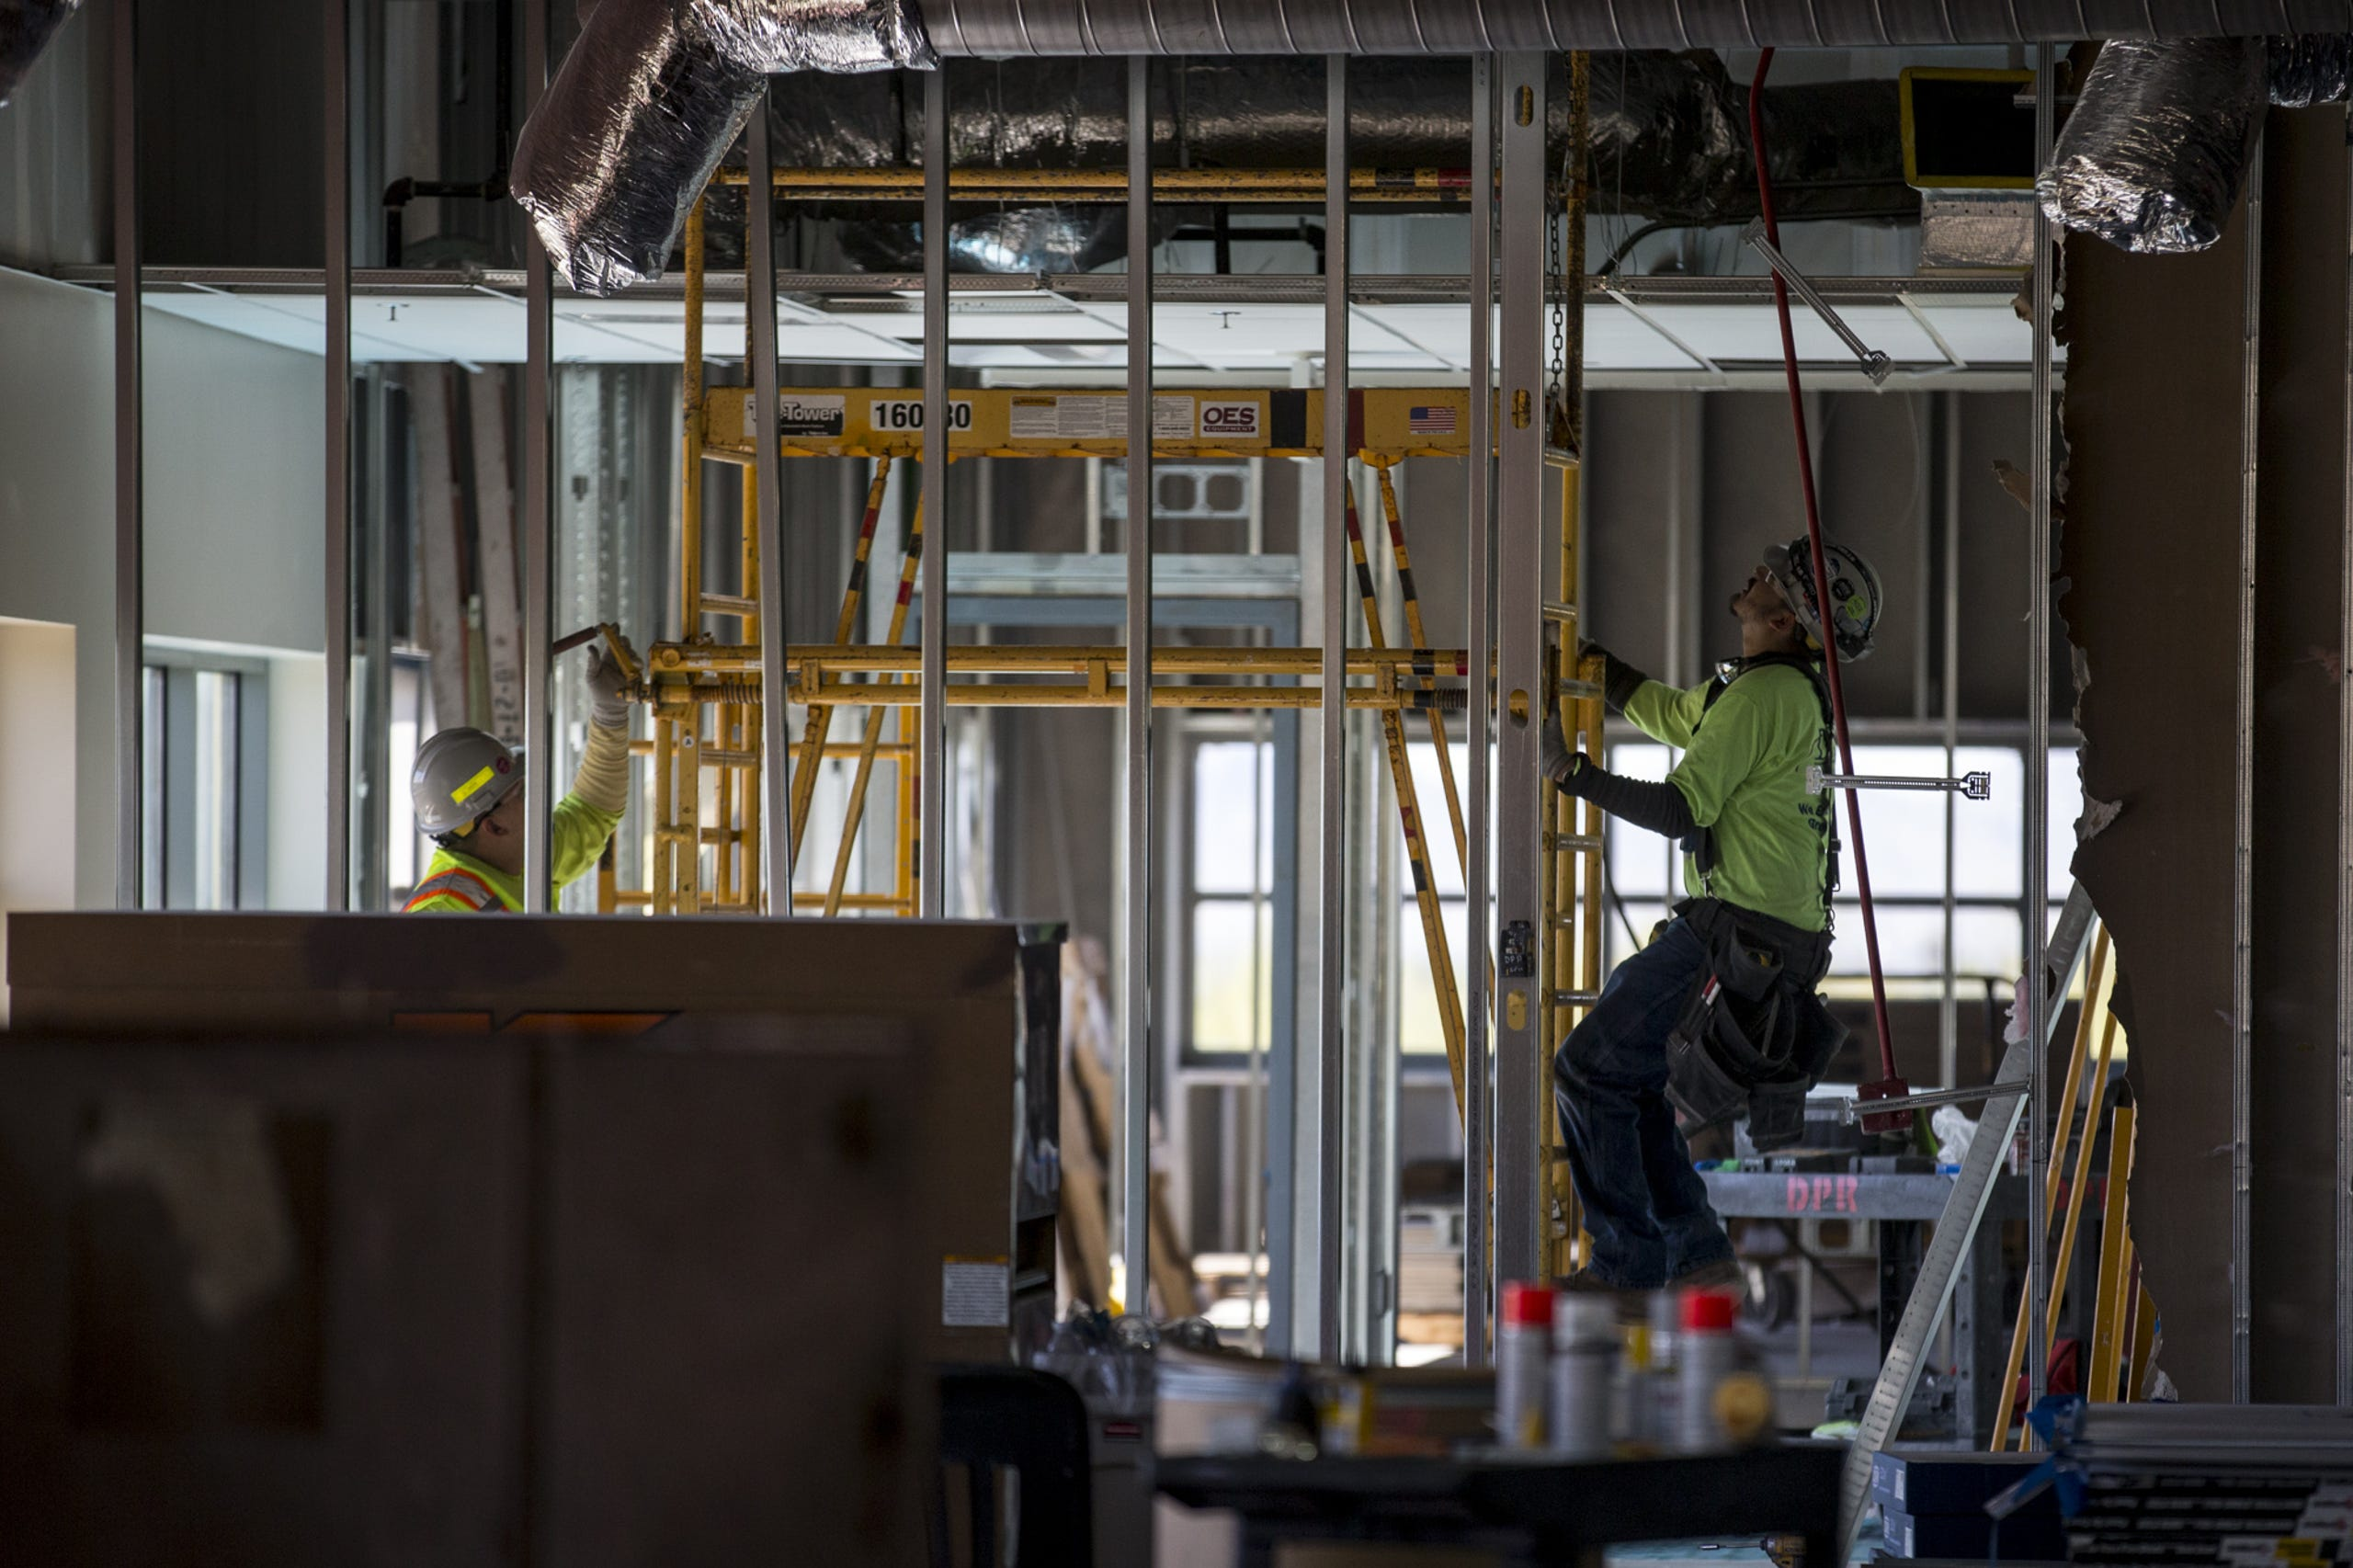 Phoenix Mayo Clinic expands under its 5-year building program